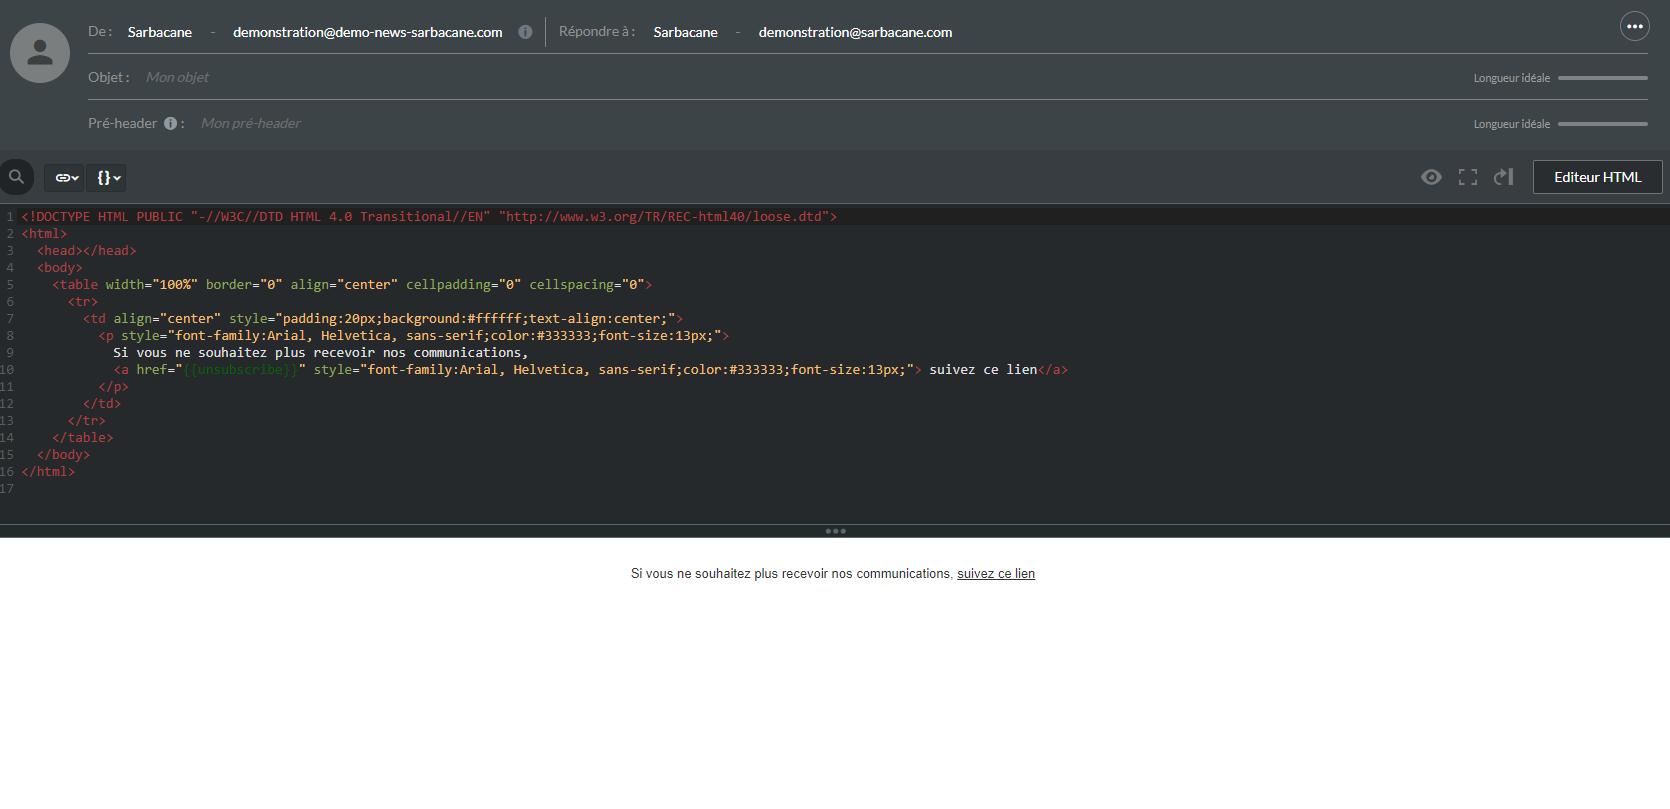 creation-emailing-html